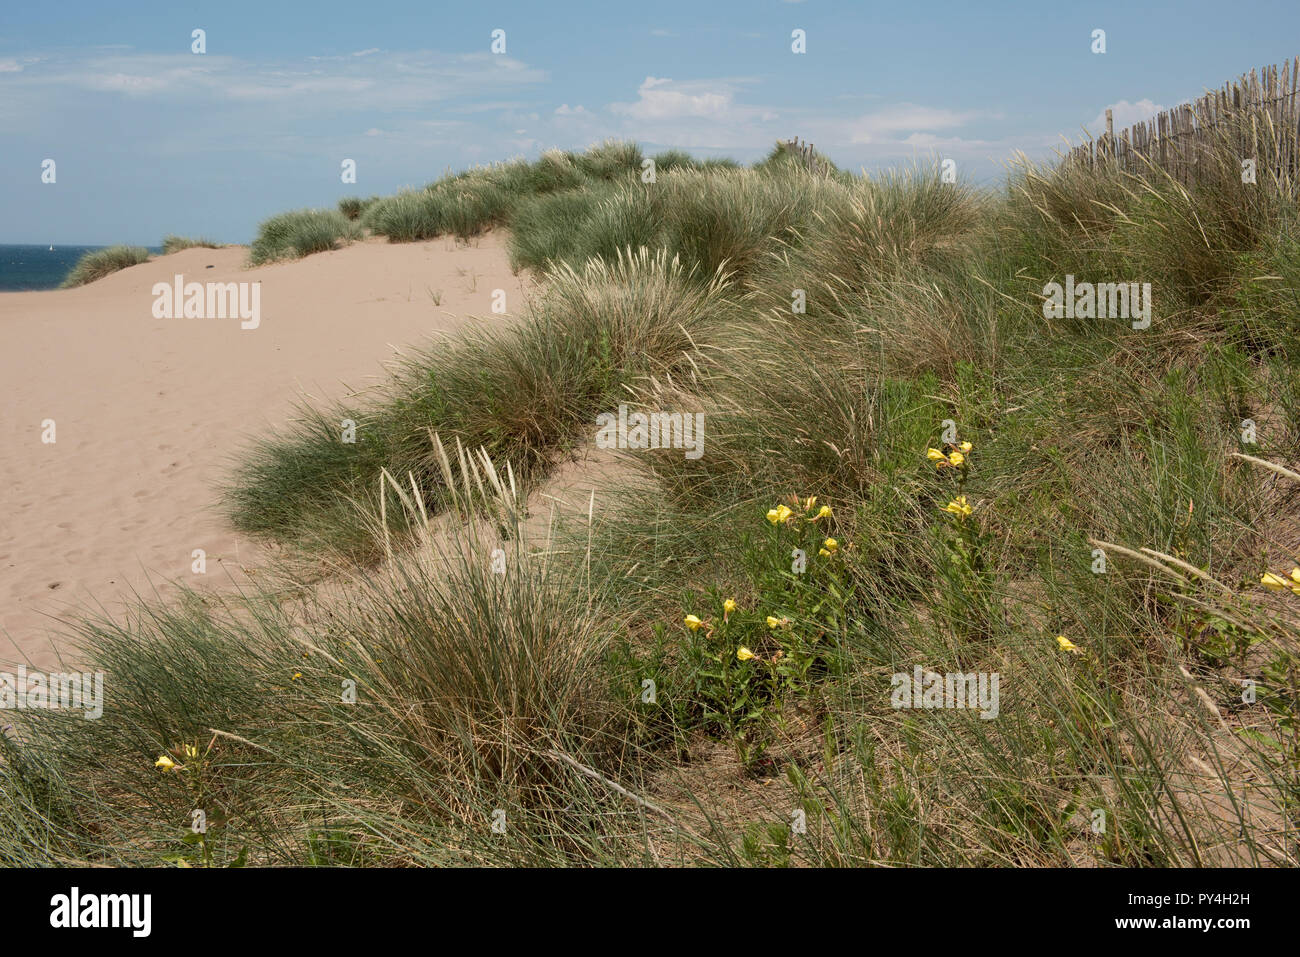 Evening primrose and marram grass growing on Bantham Beach controlling wind erosion on the sand dunes, South Devon, July - Stock Image